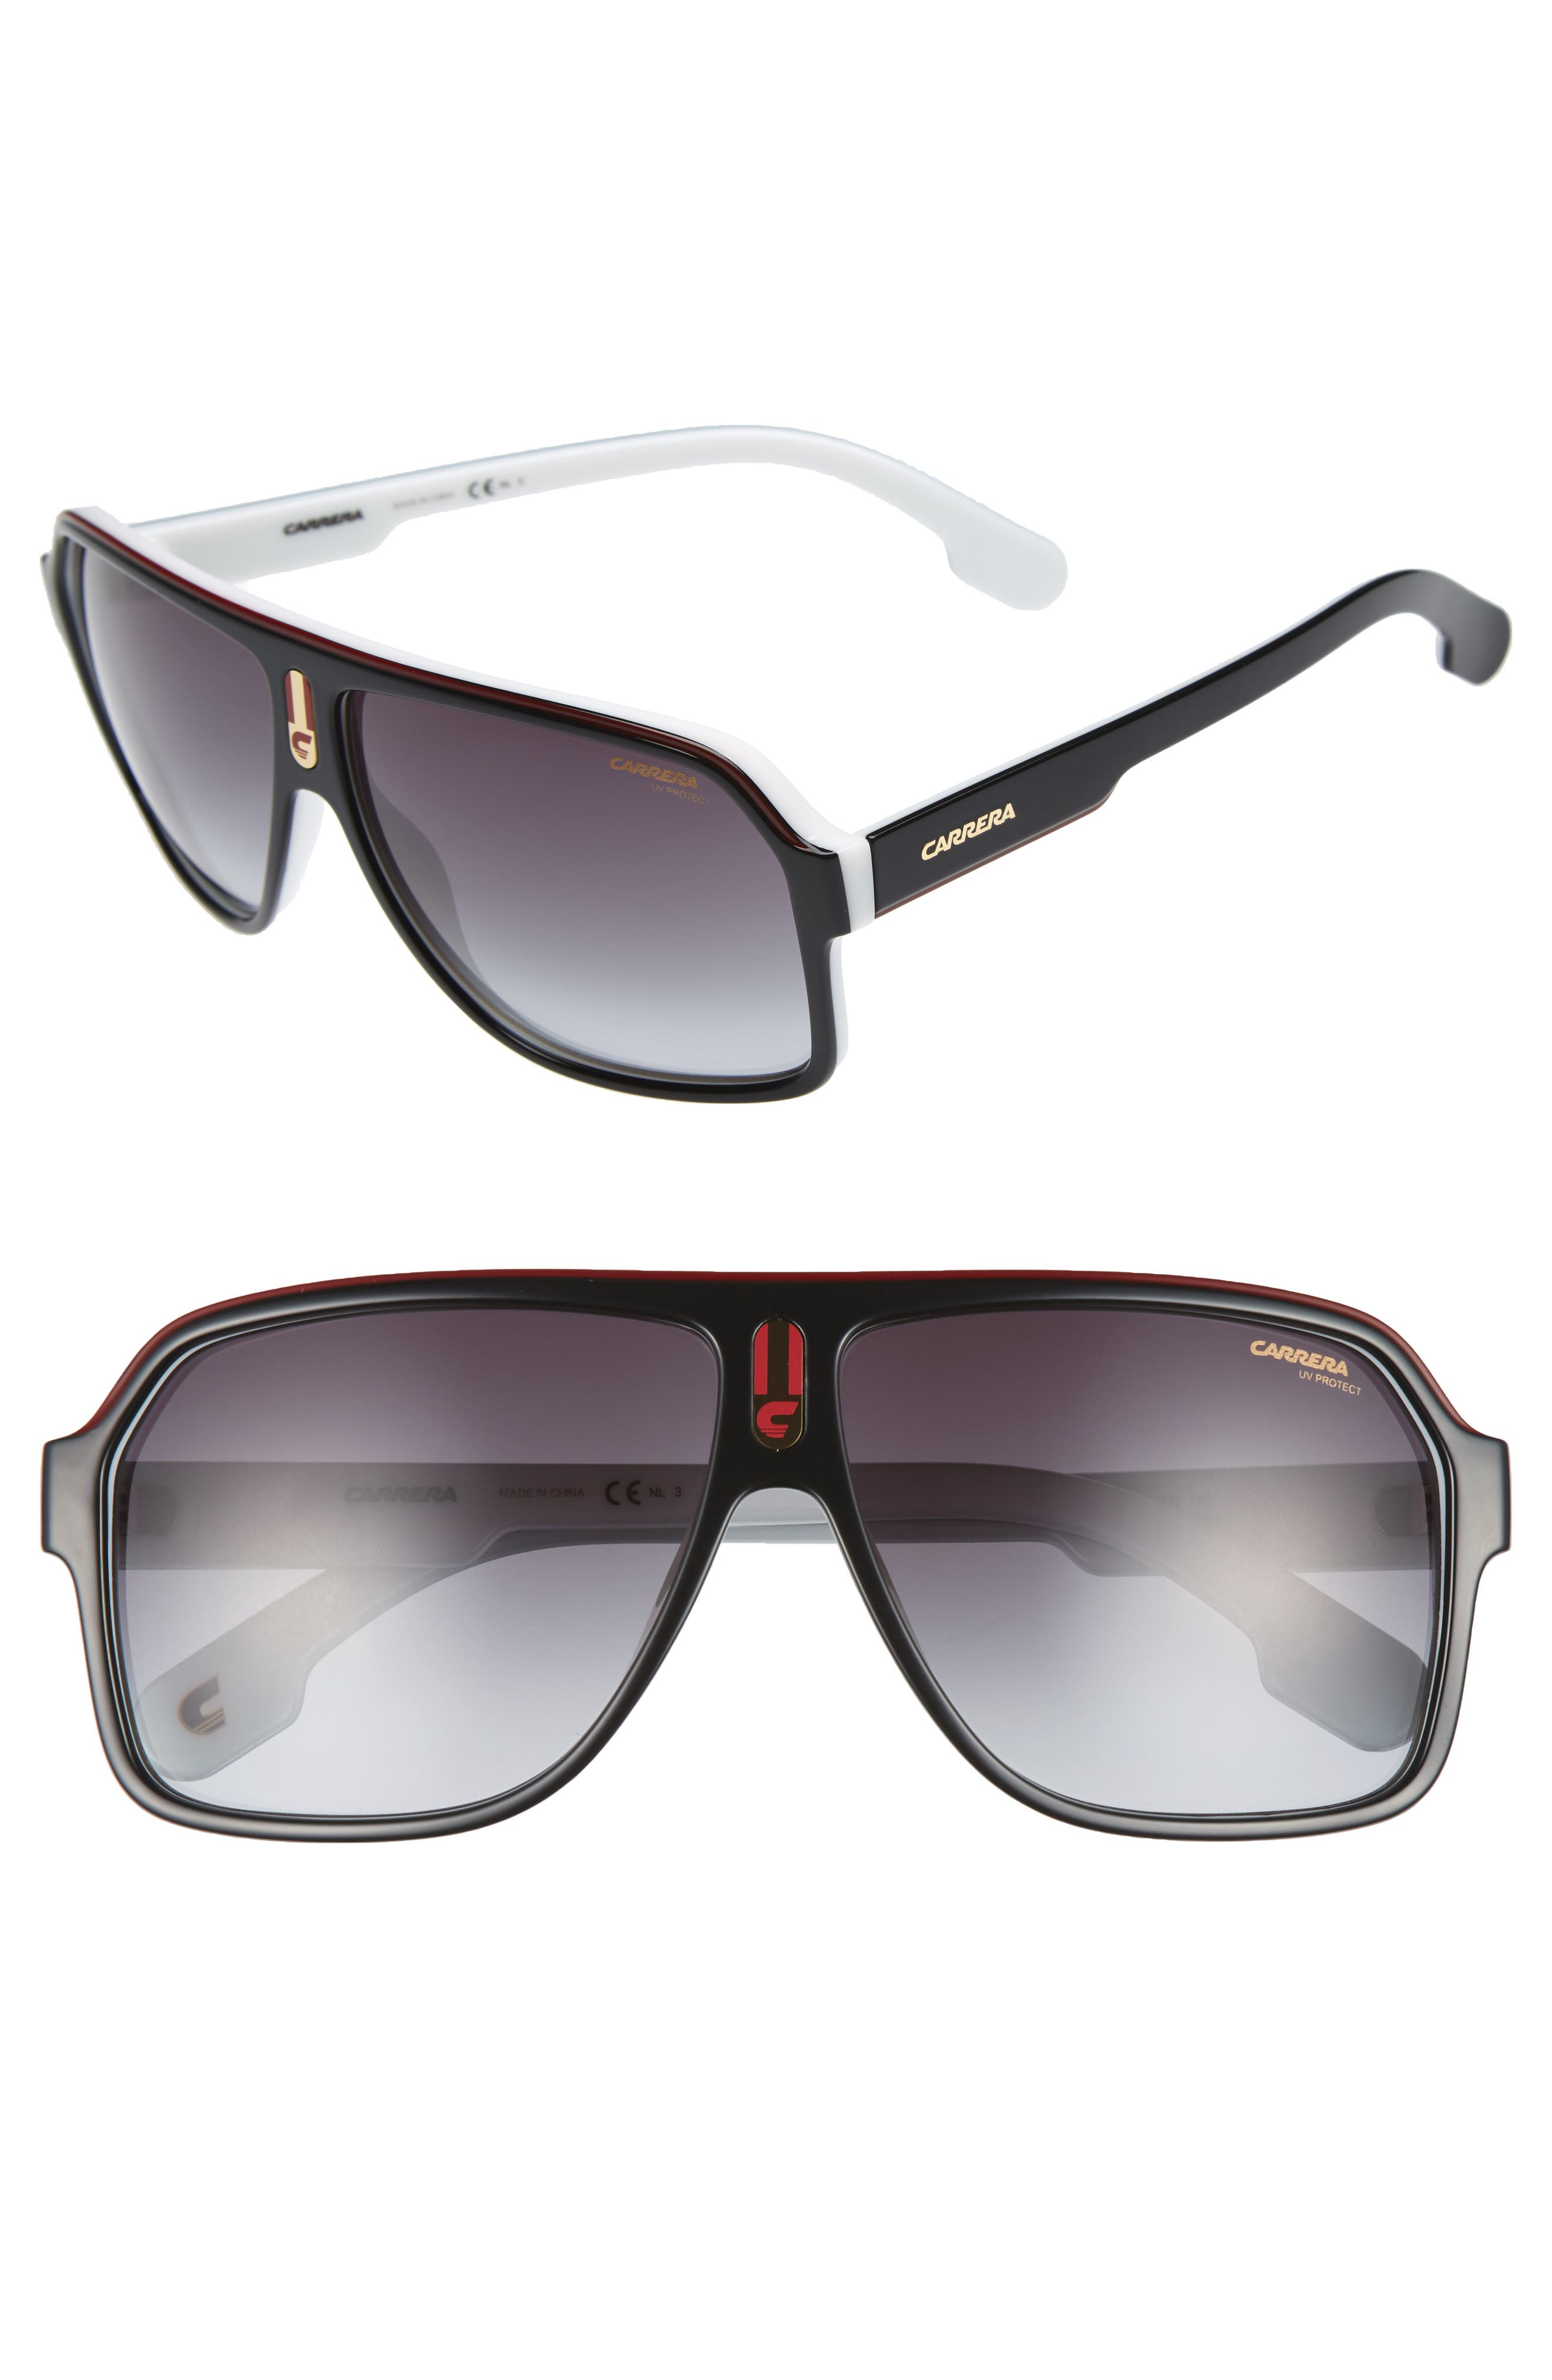 Carrera Eyewear 1001/s 62Mm Sunglasses -